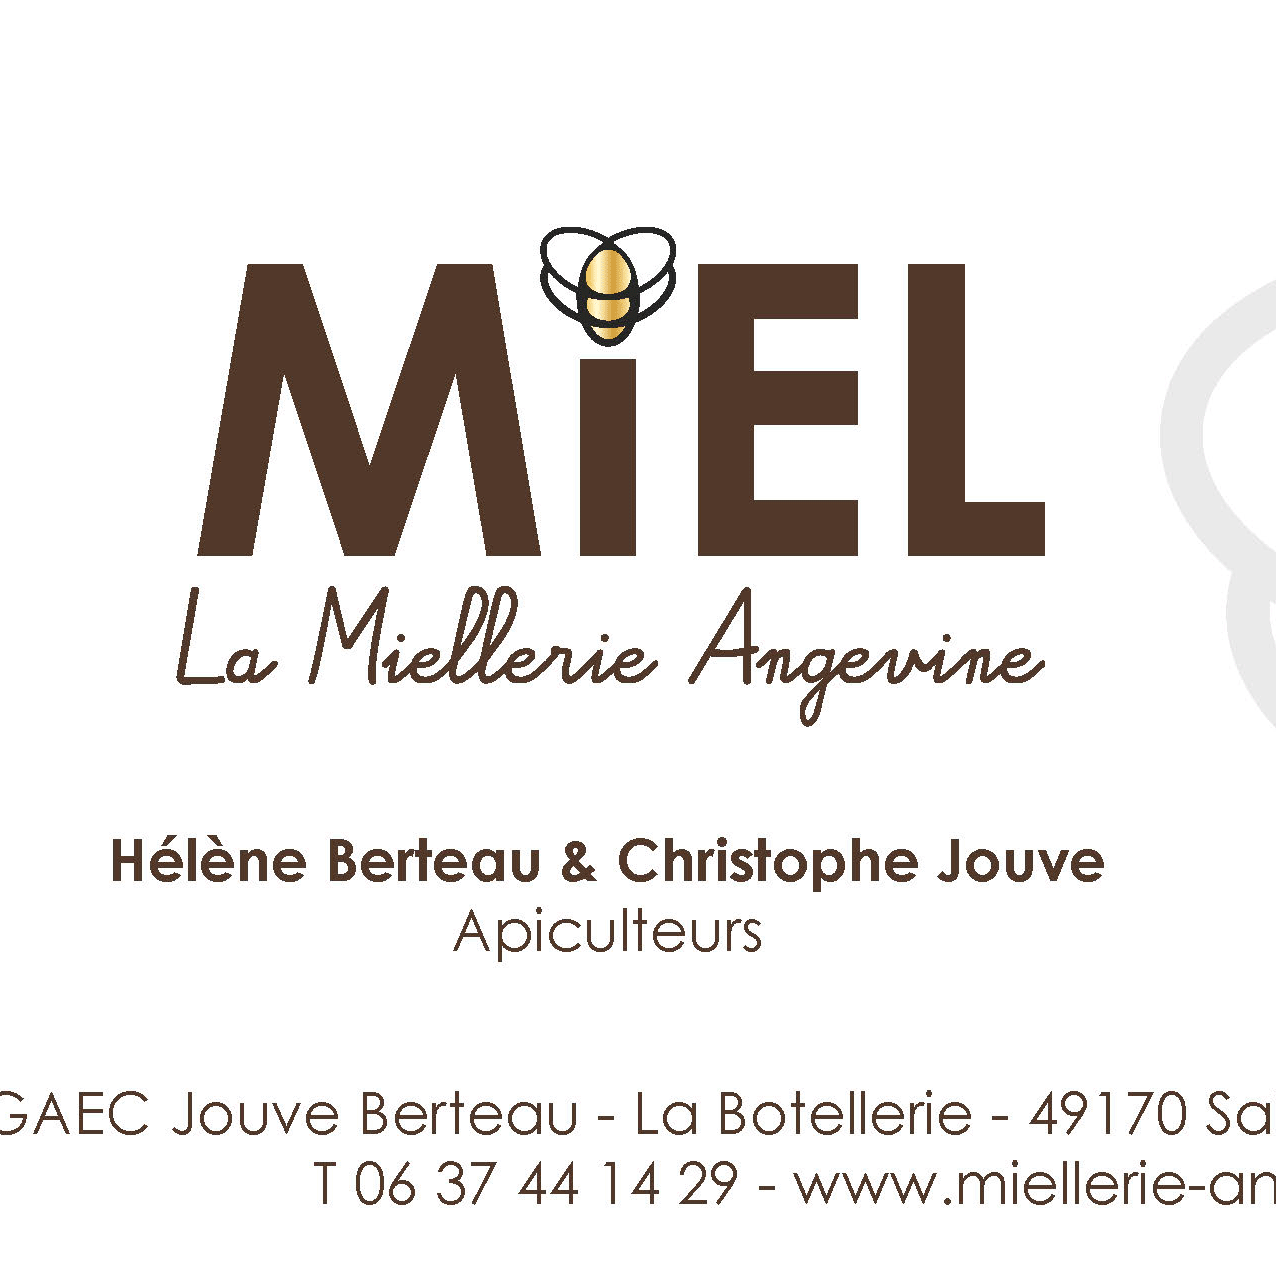 Carte commerciale Miellerie Angevine